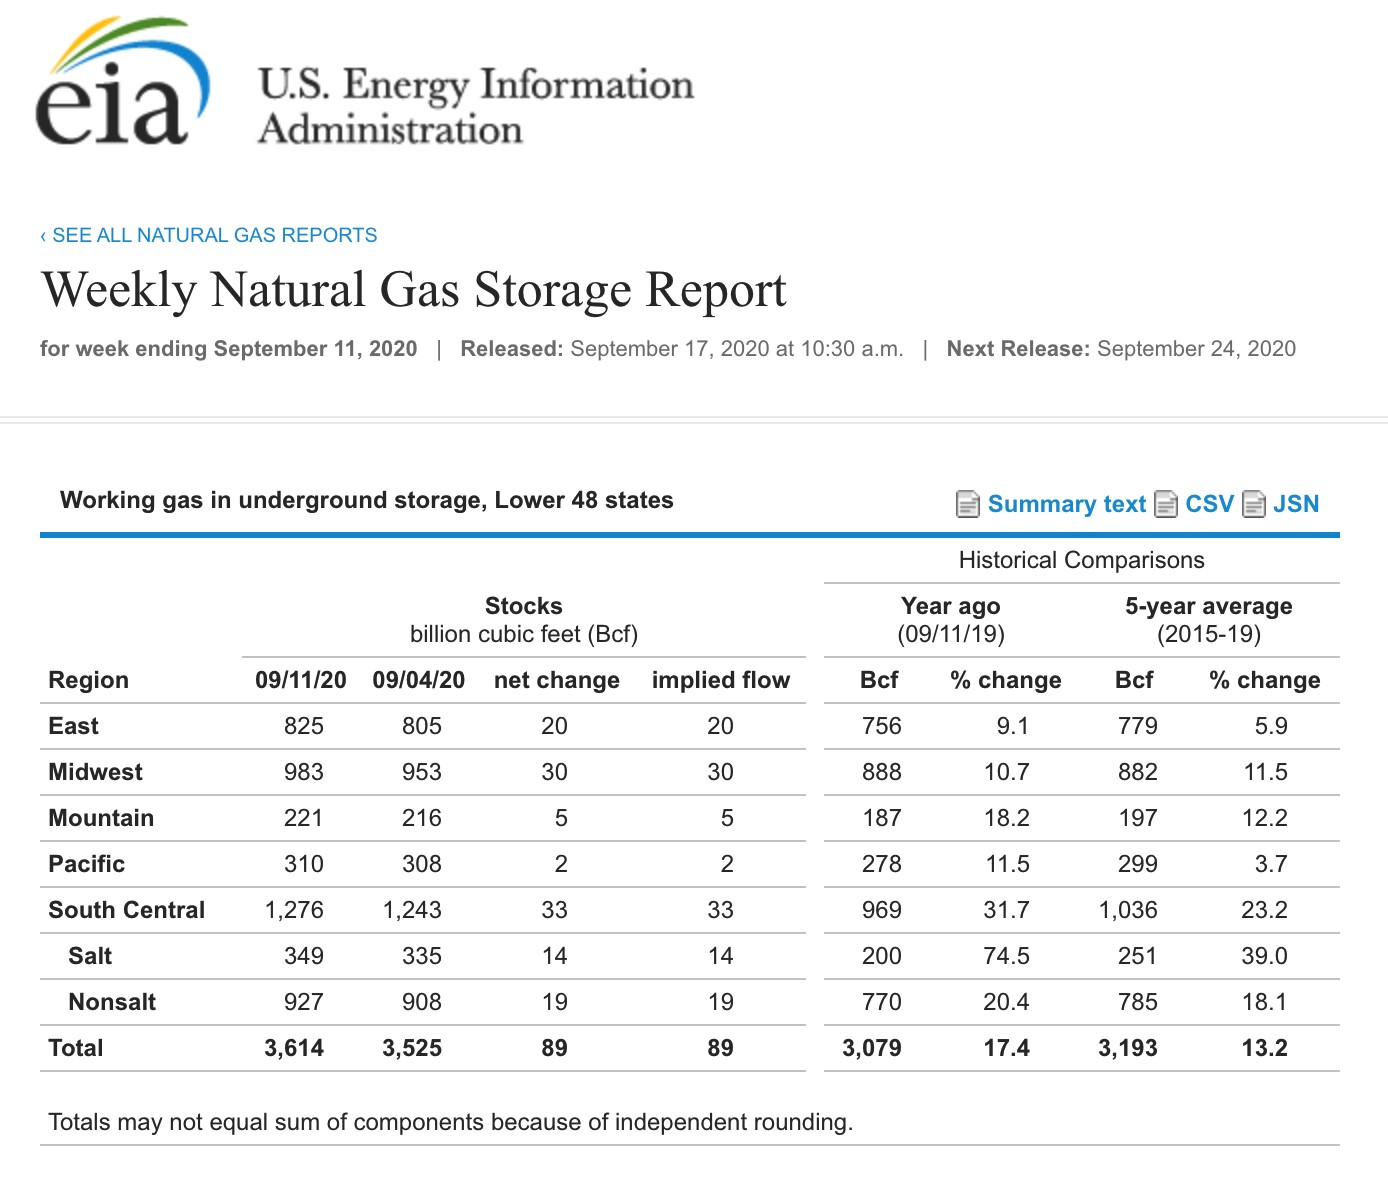 Weekly Natural Gas Storage Report.